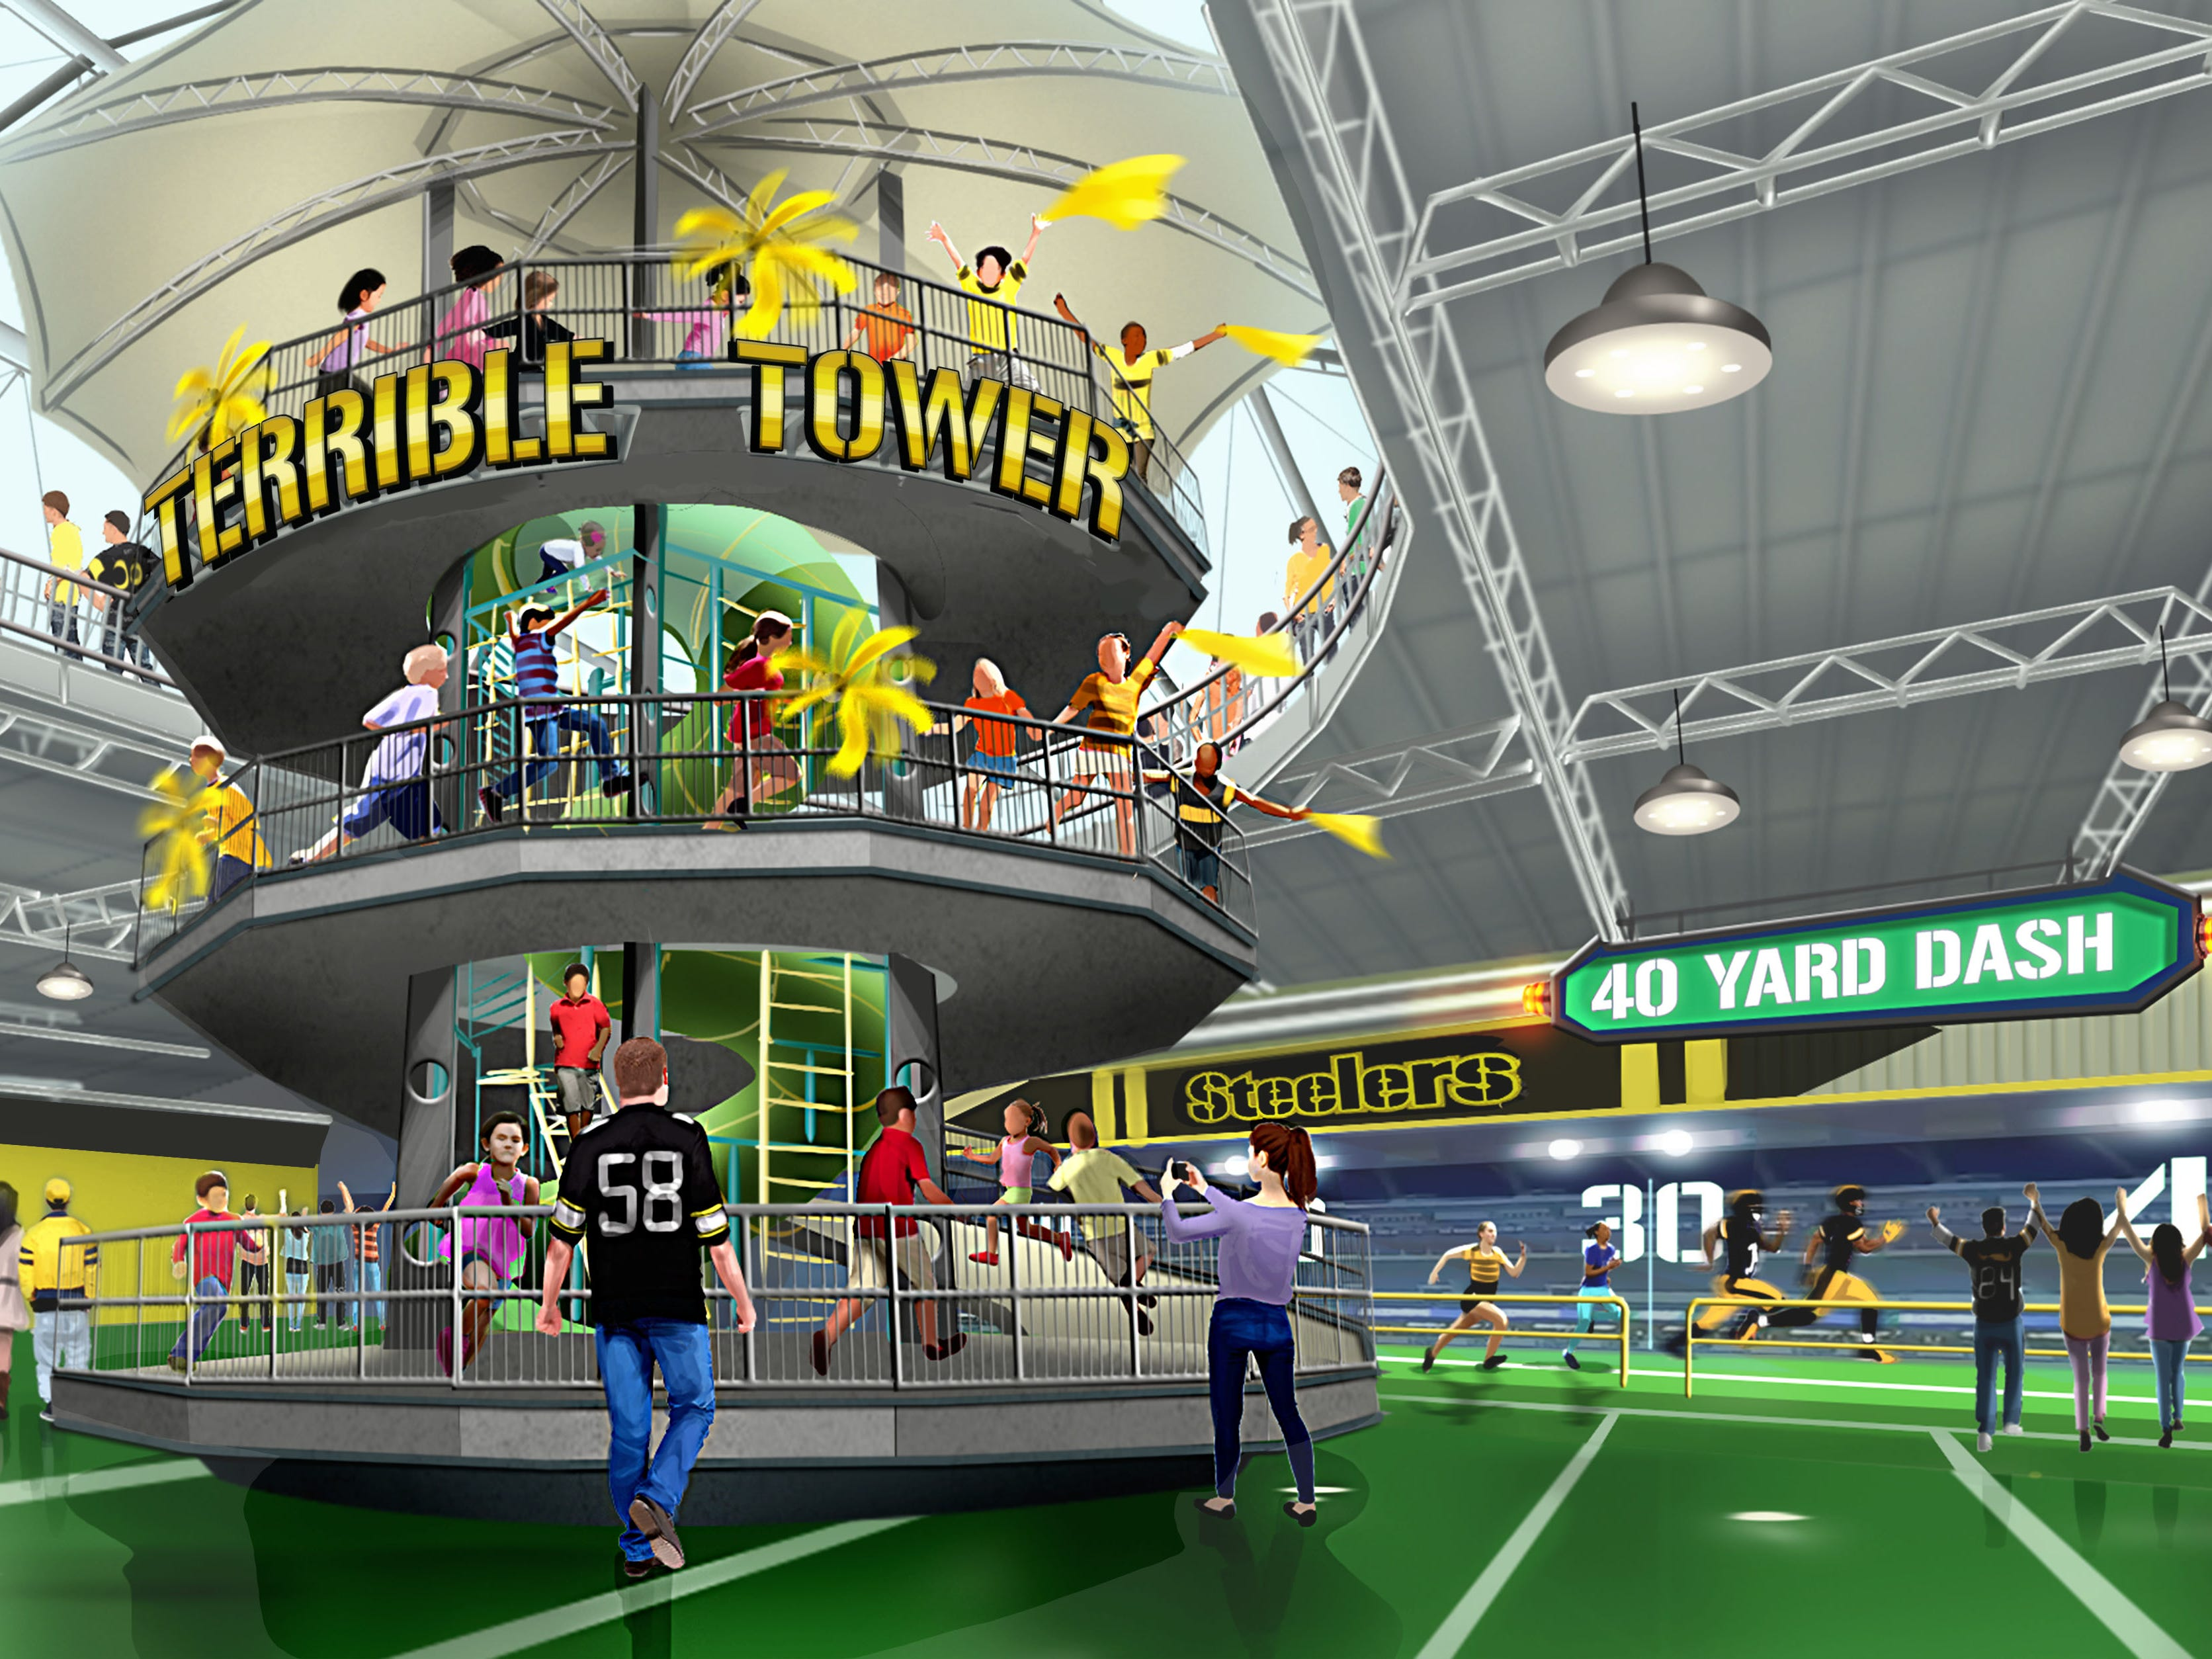 The new Steel Curtain roller coaster at Kennywood will be part of a new football-focused land called Steelers Country.